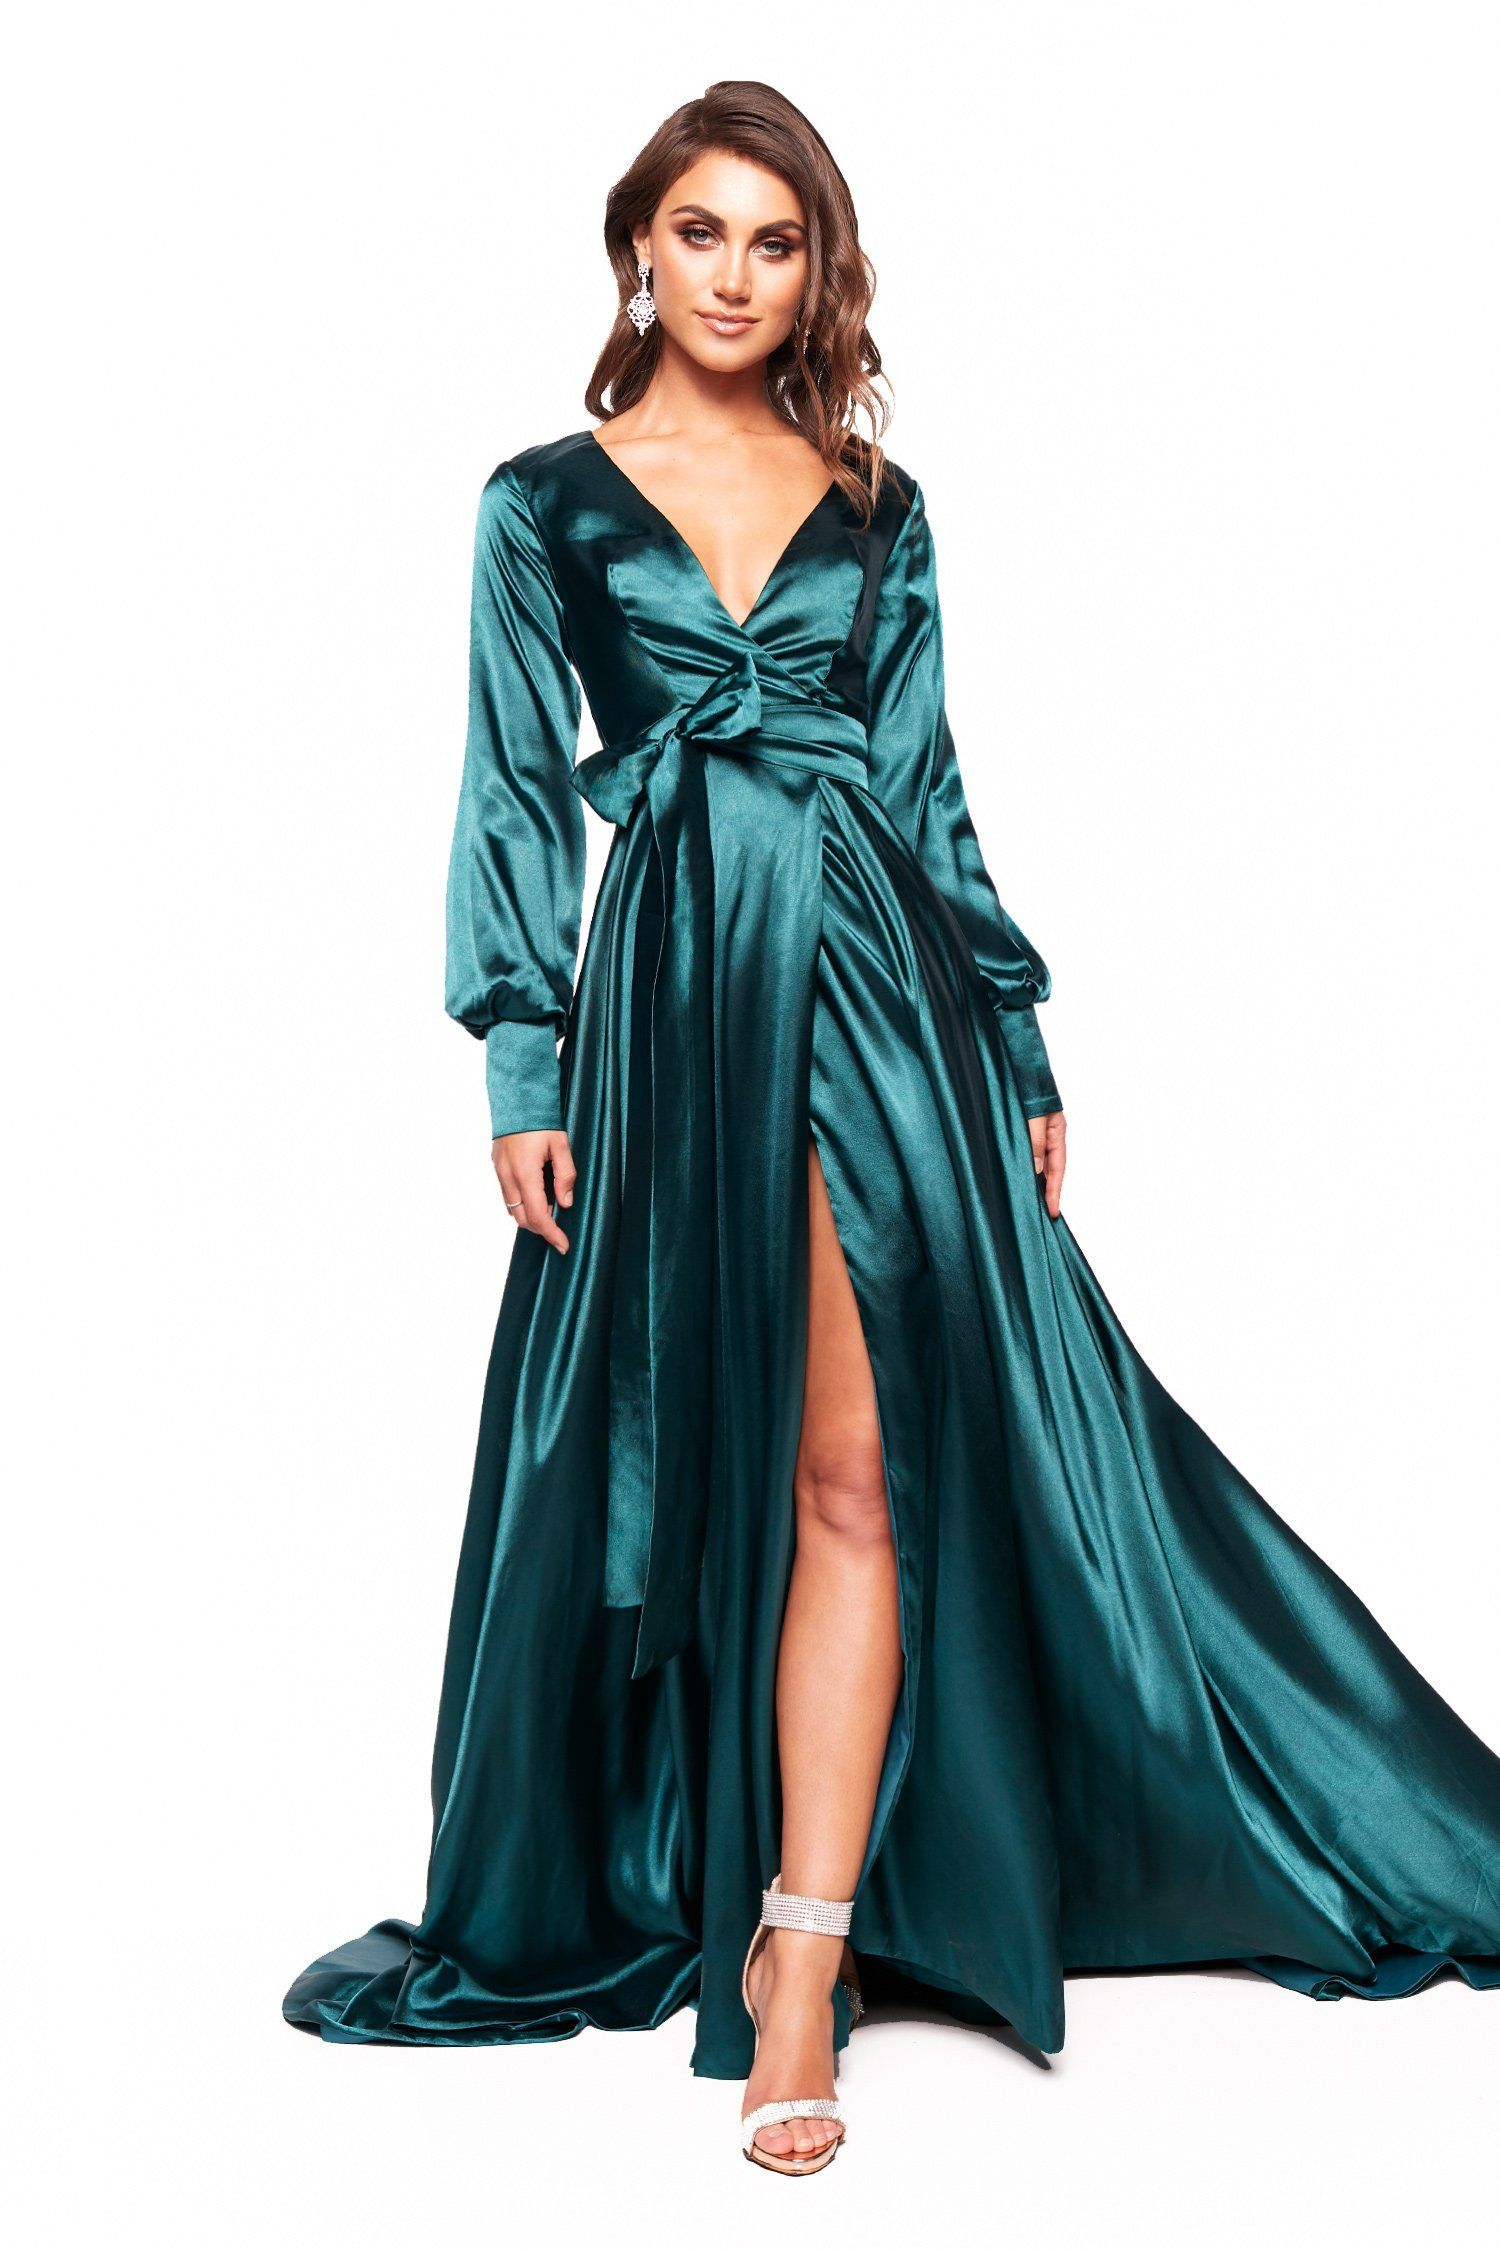 c7f210f6 A&N Luxe Paloma - Teal Long Sleeved Satin Gown with Plunge Neck & Slit –  A&N Luxe Label